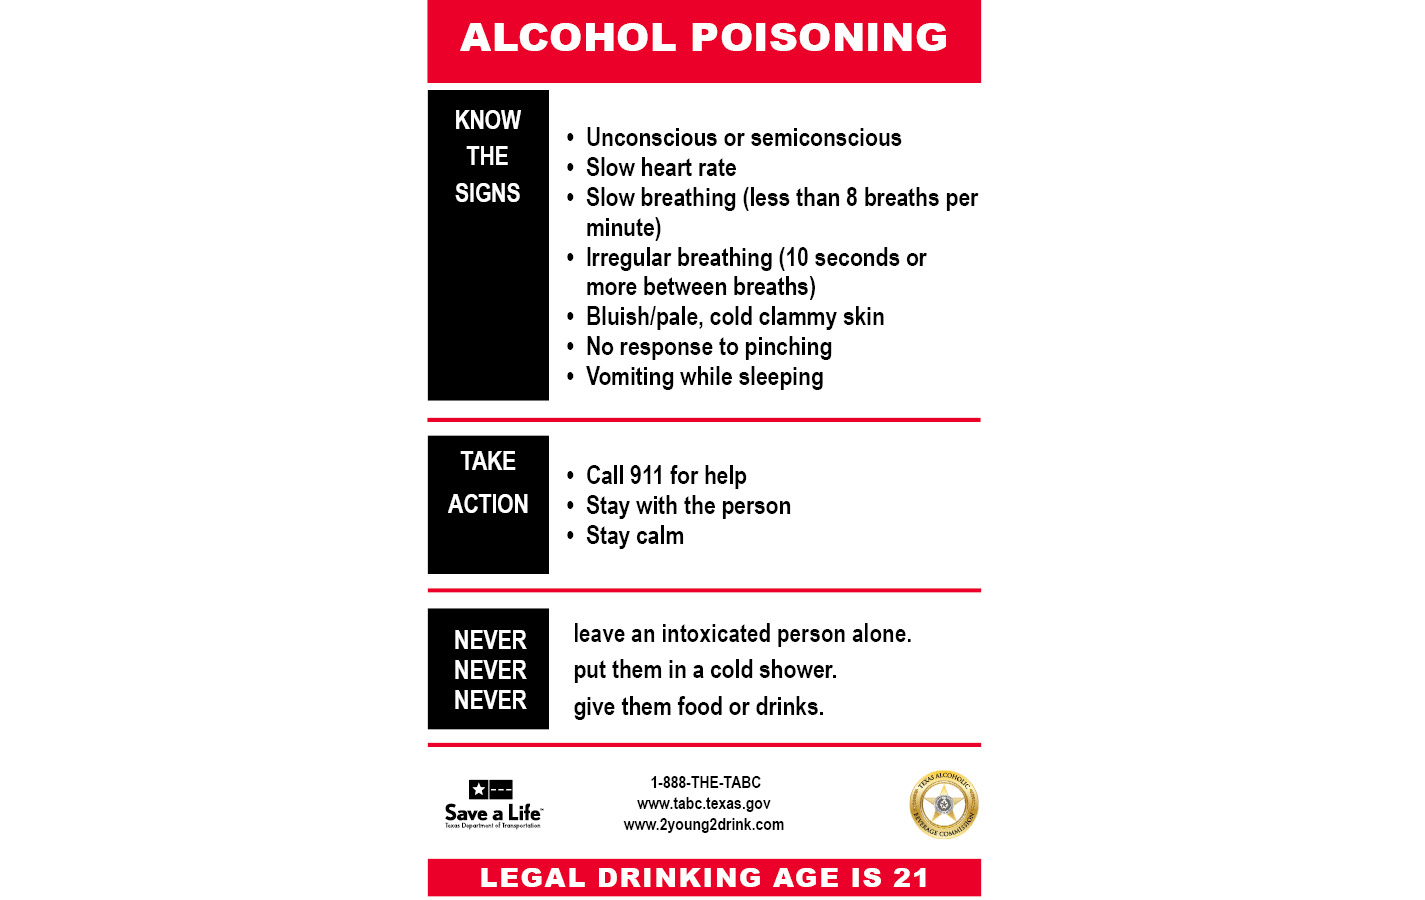 911 Lifeline Law / Alcohol Poisoning Card